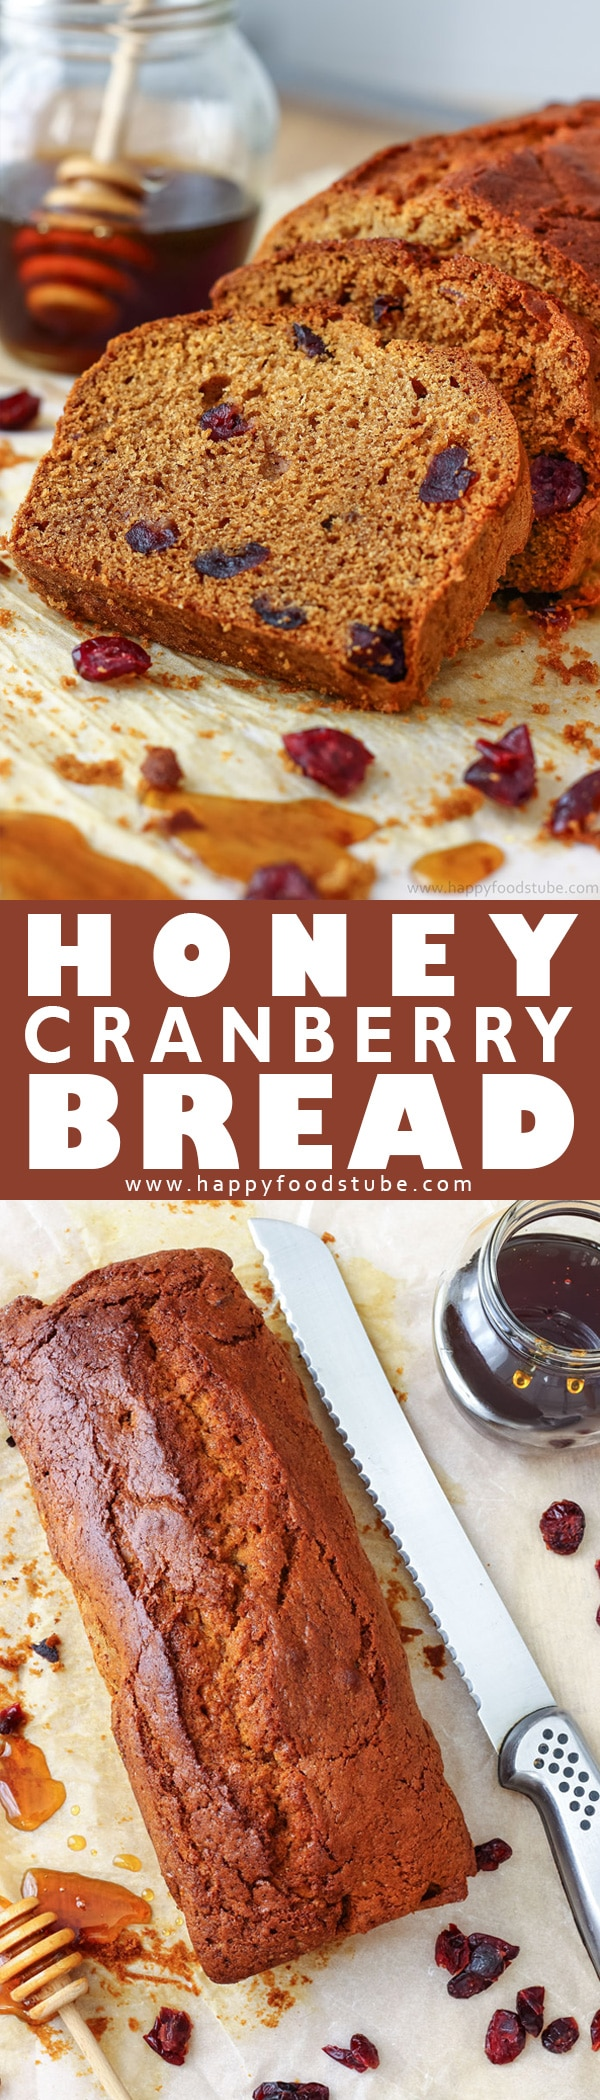 This honey cranberry bread is a delicious quick bread. Made from scratch, with a 10 minute preparation it is the perfect loaf for busy families. Homemade honey bread with cranberries. #quickbread #bread #loaf #baking